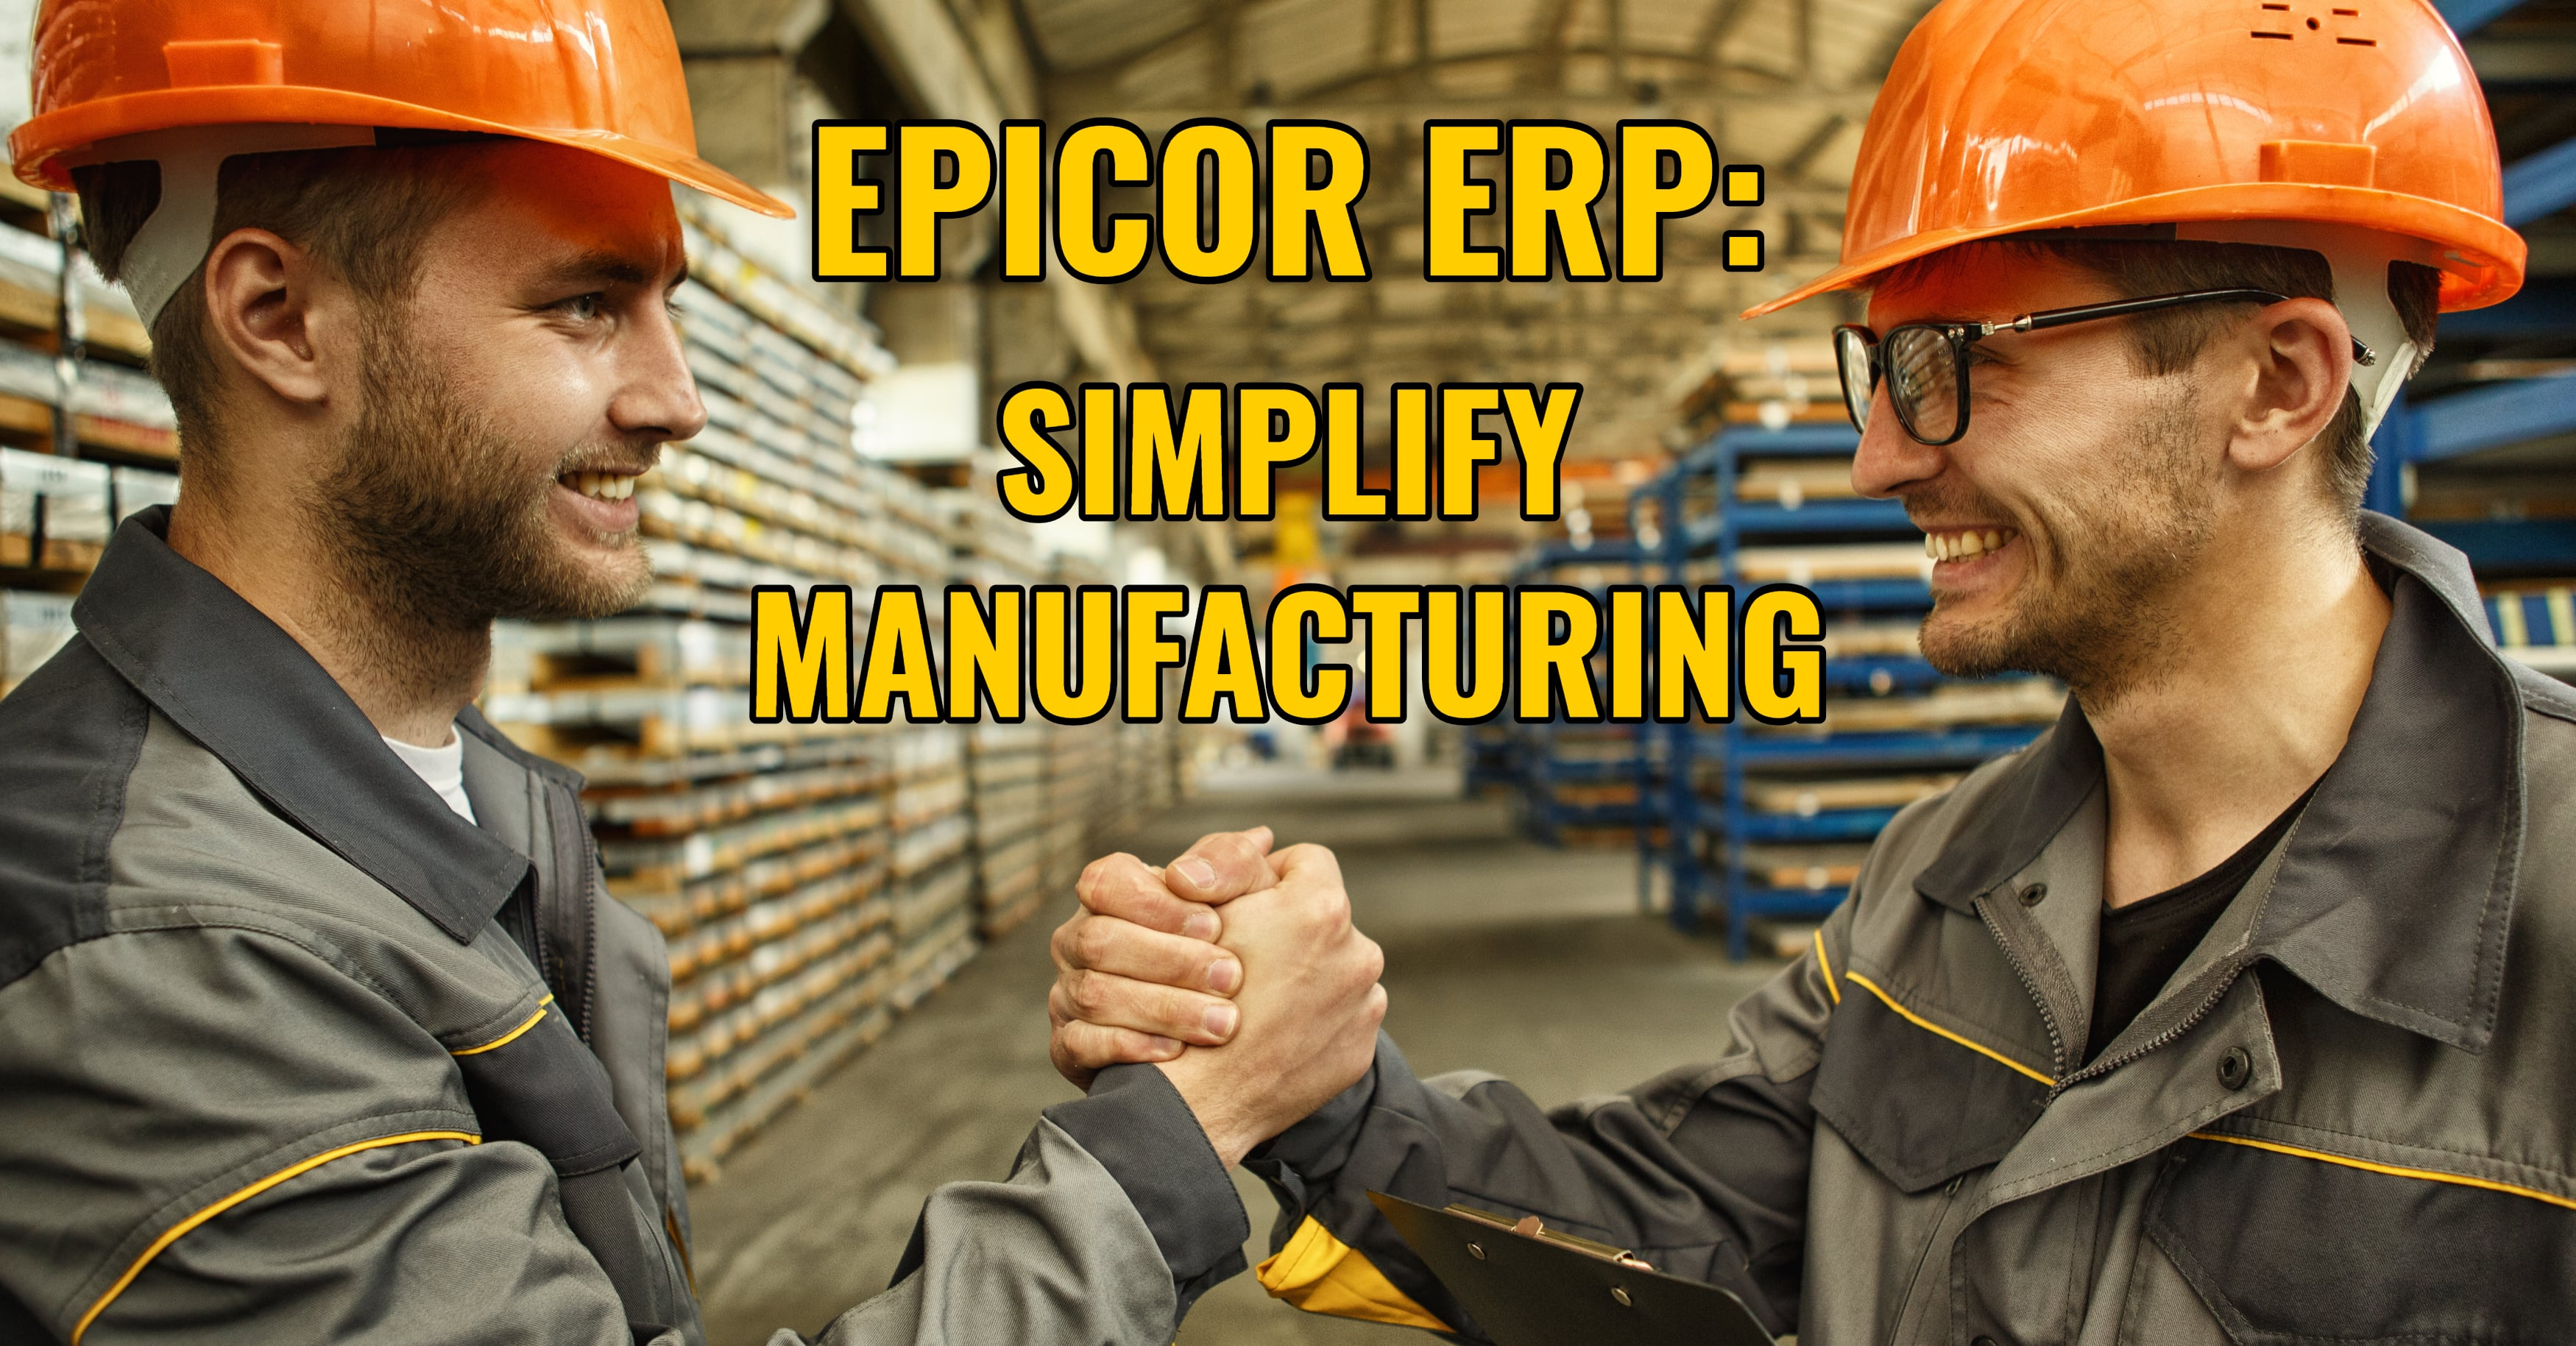 How Does Epicor ERP Simplify Manufacturing?